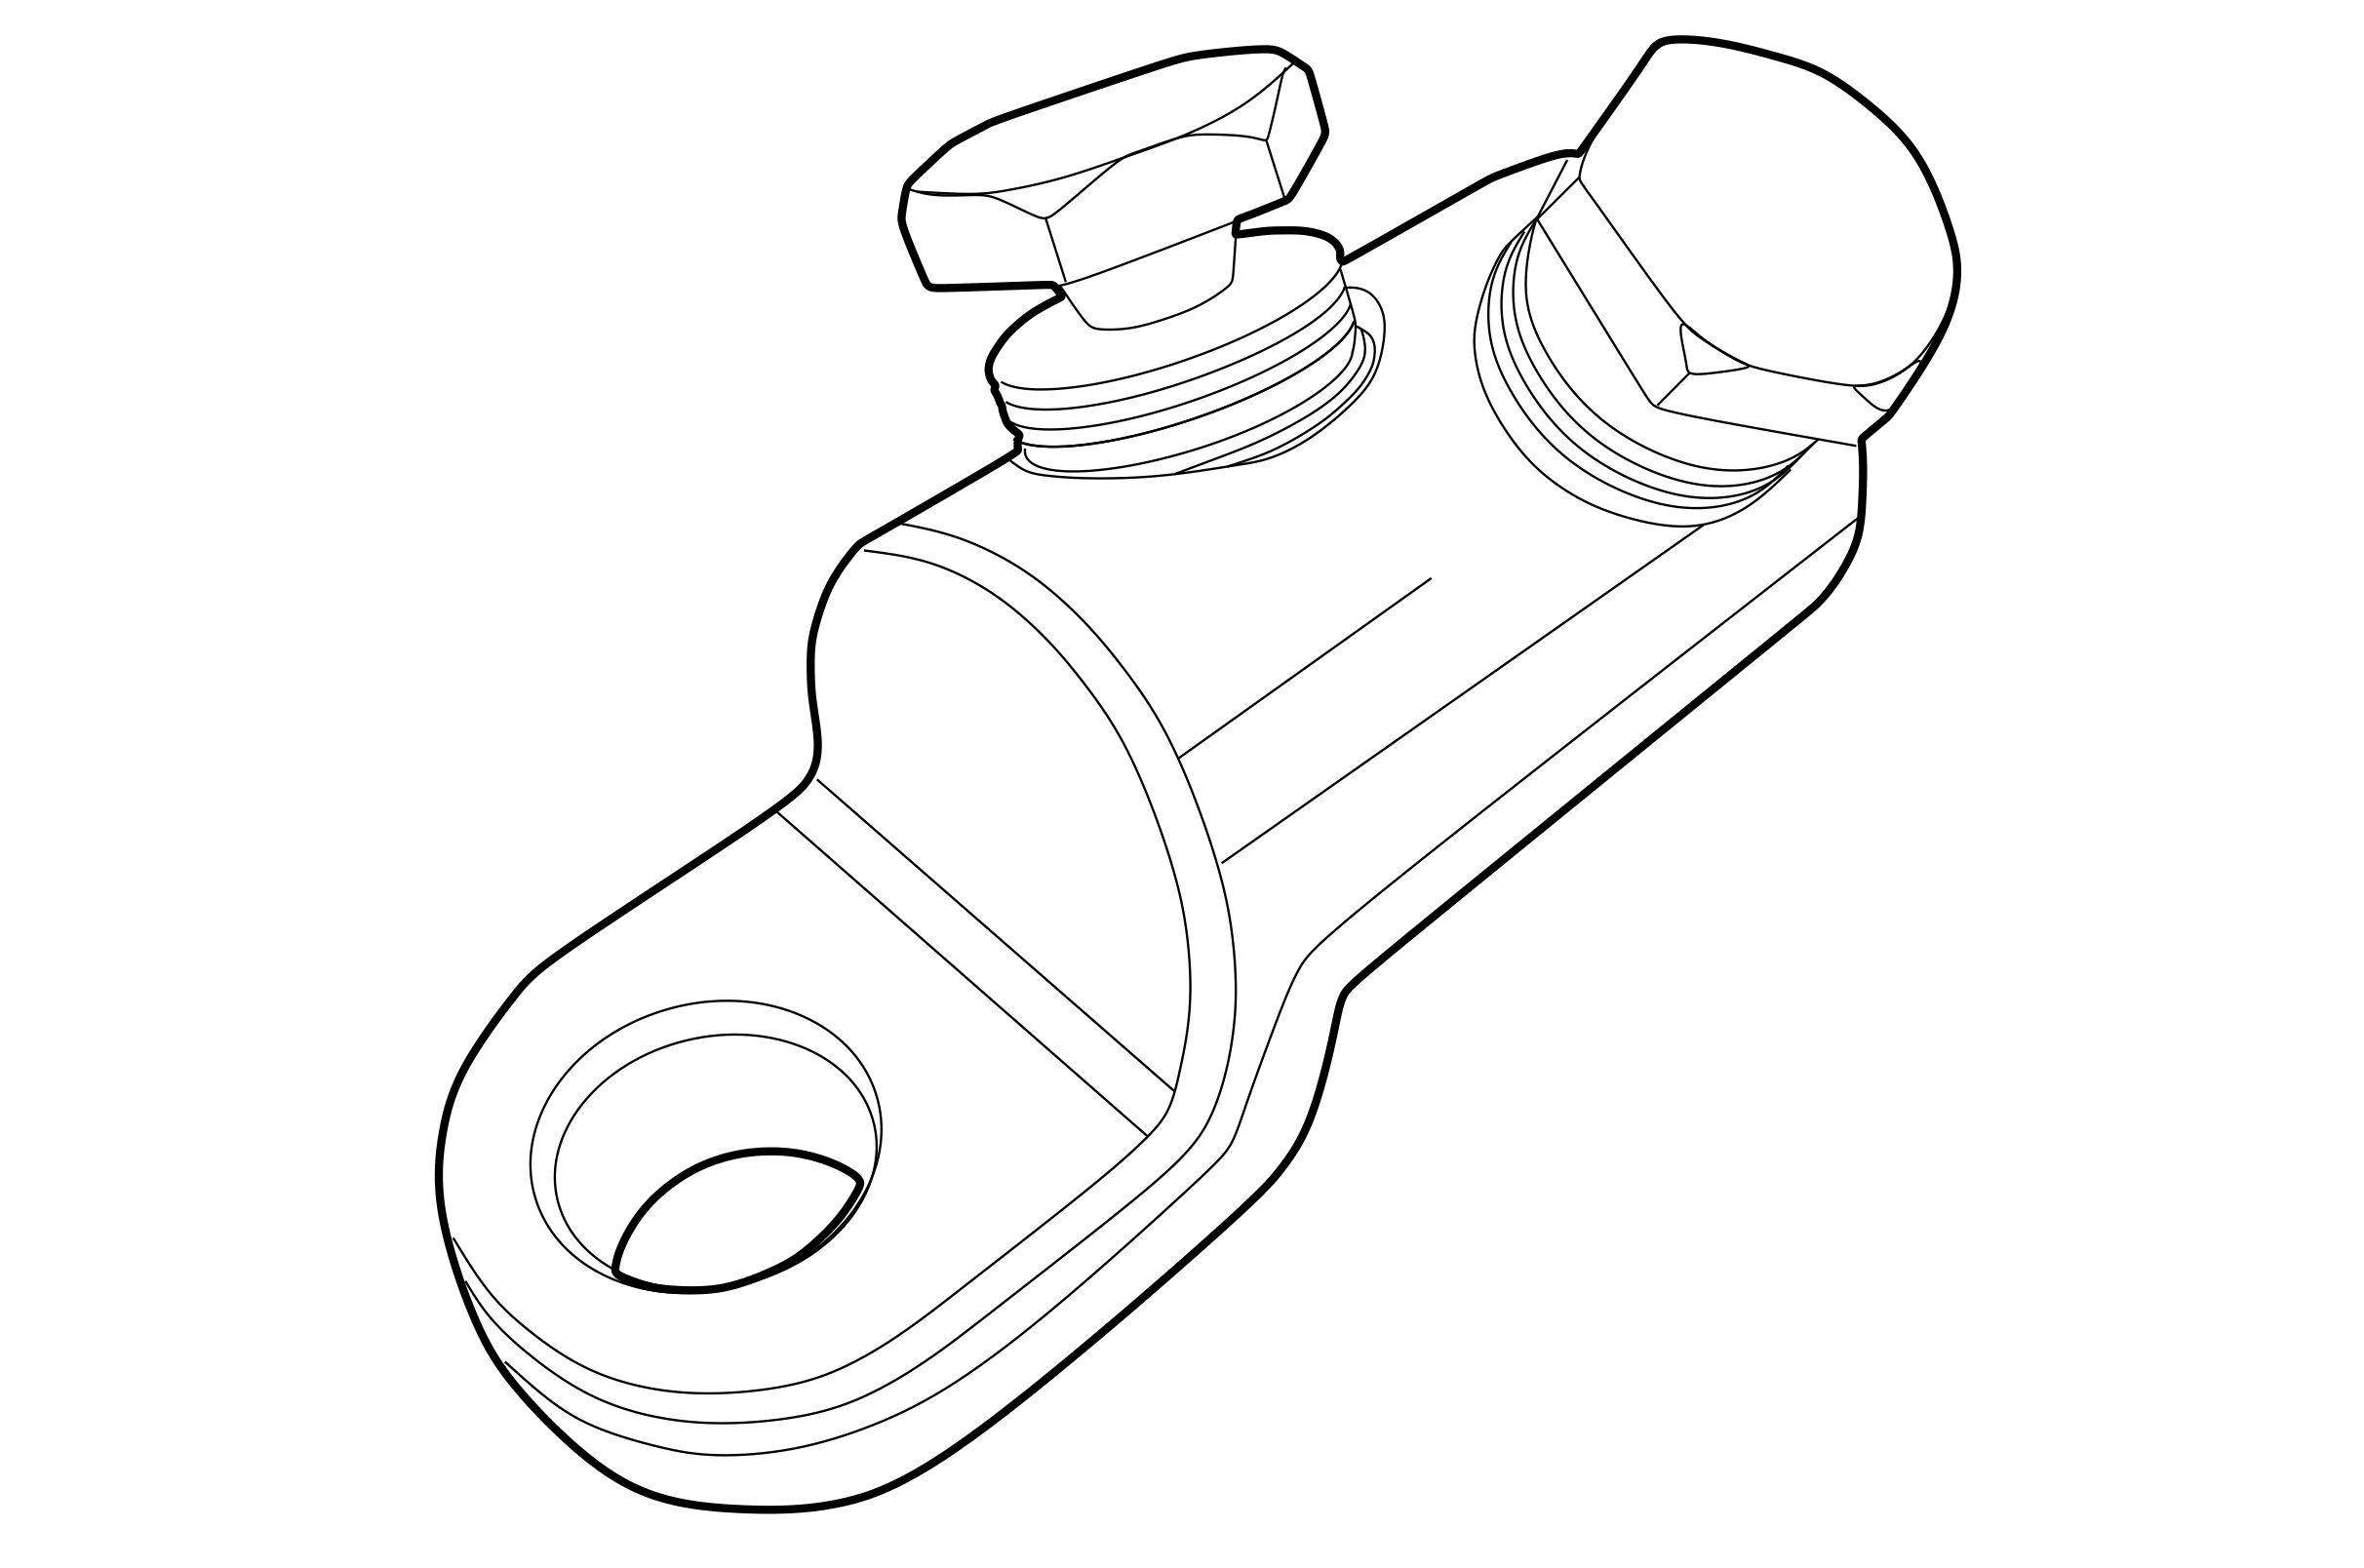 SHEAR-HEAD CABLE LUGS AND CONNECTORS